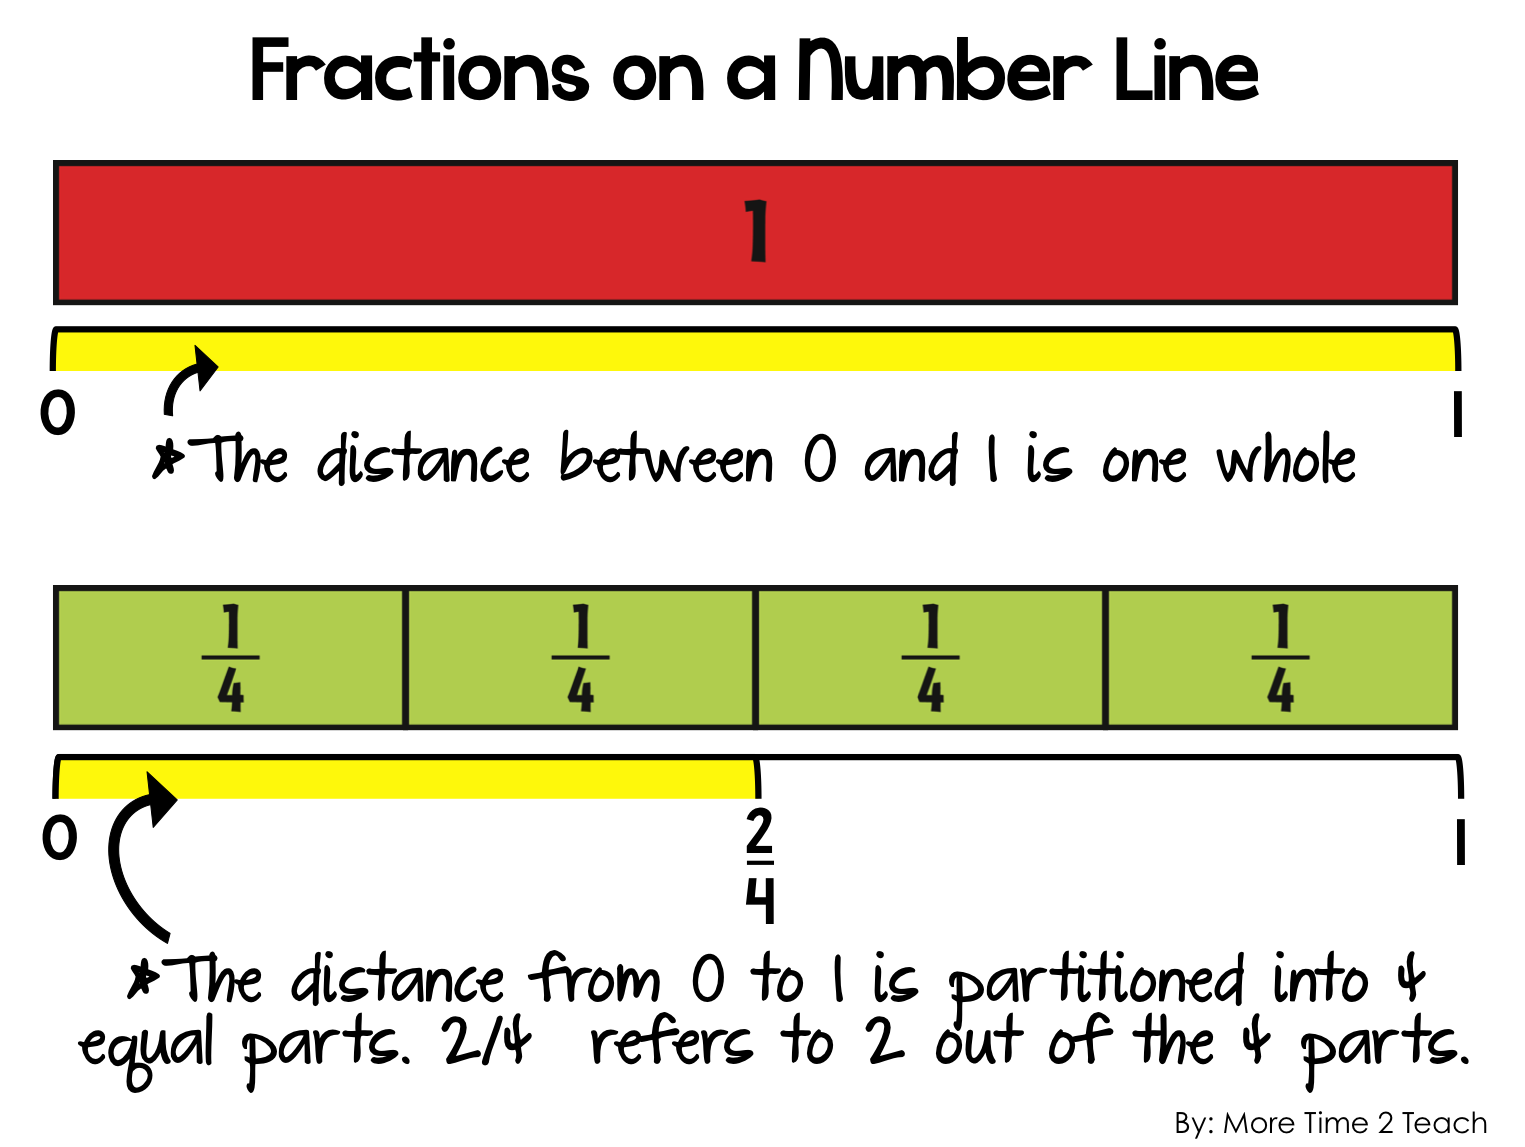 Worksheet Parts Of A Fraction iteach third fractions on a number line students usually get this part the second and trickier step is that lengths between ticks mark fractional parts